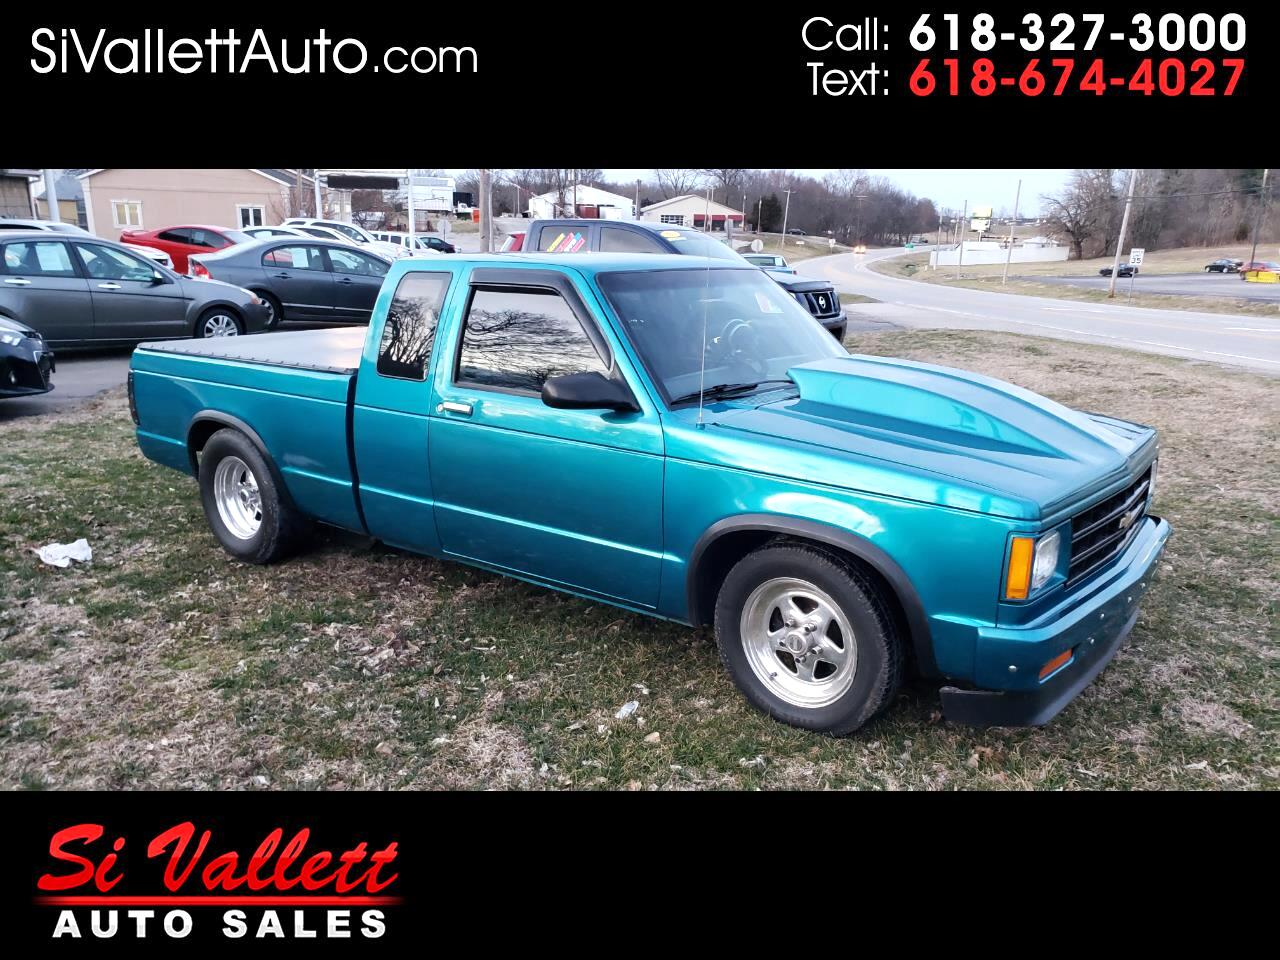 Chevrolet S-10 Fleetside 6' 1984